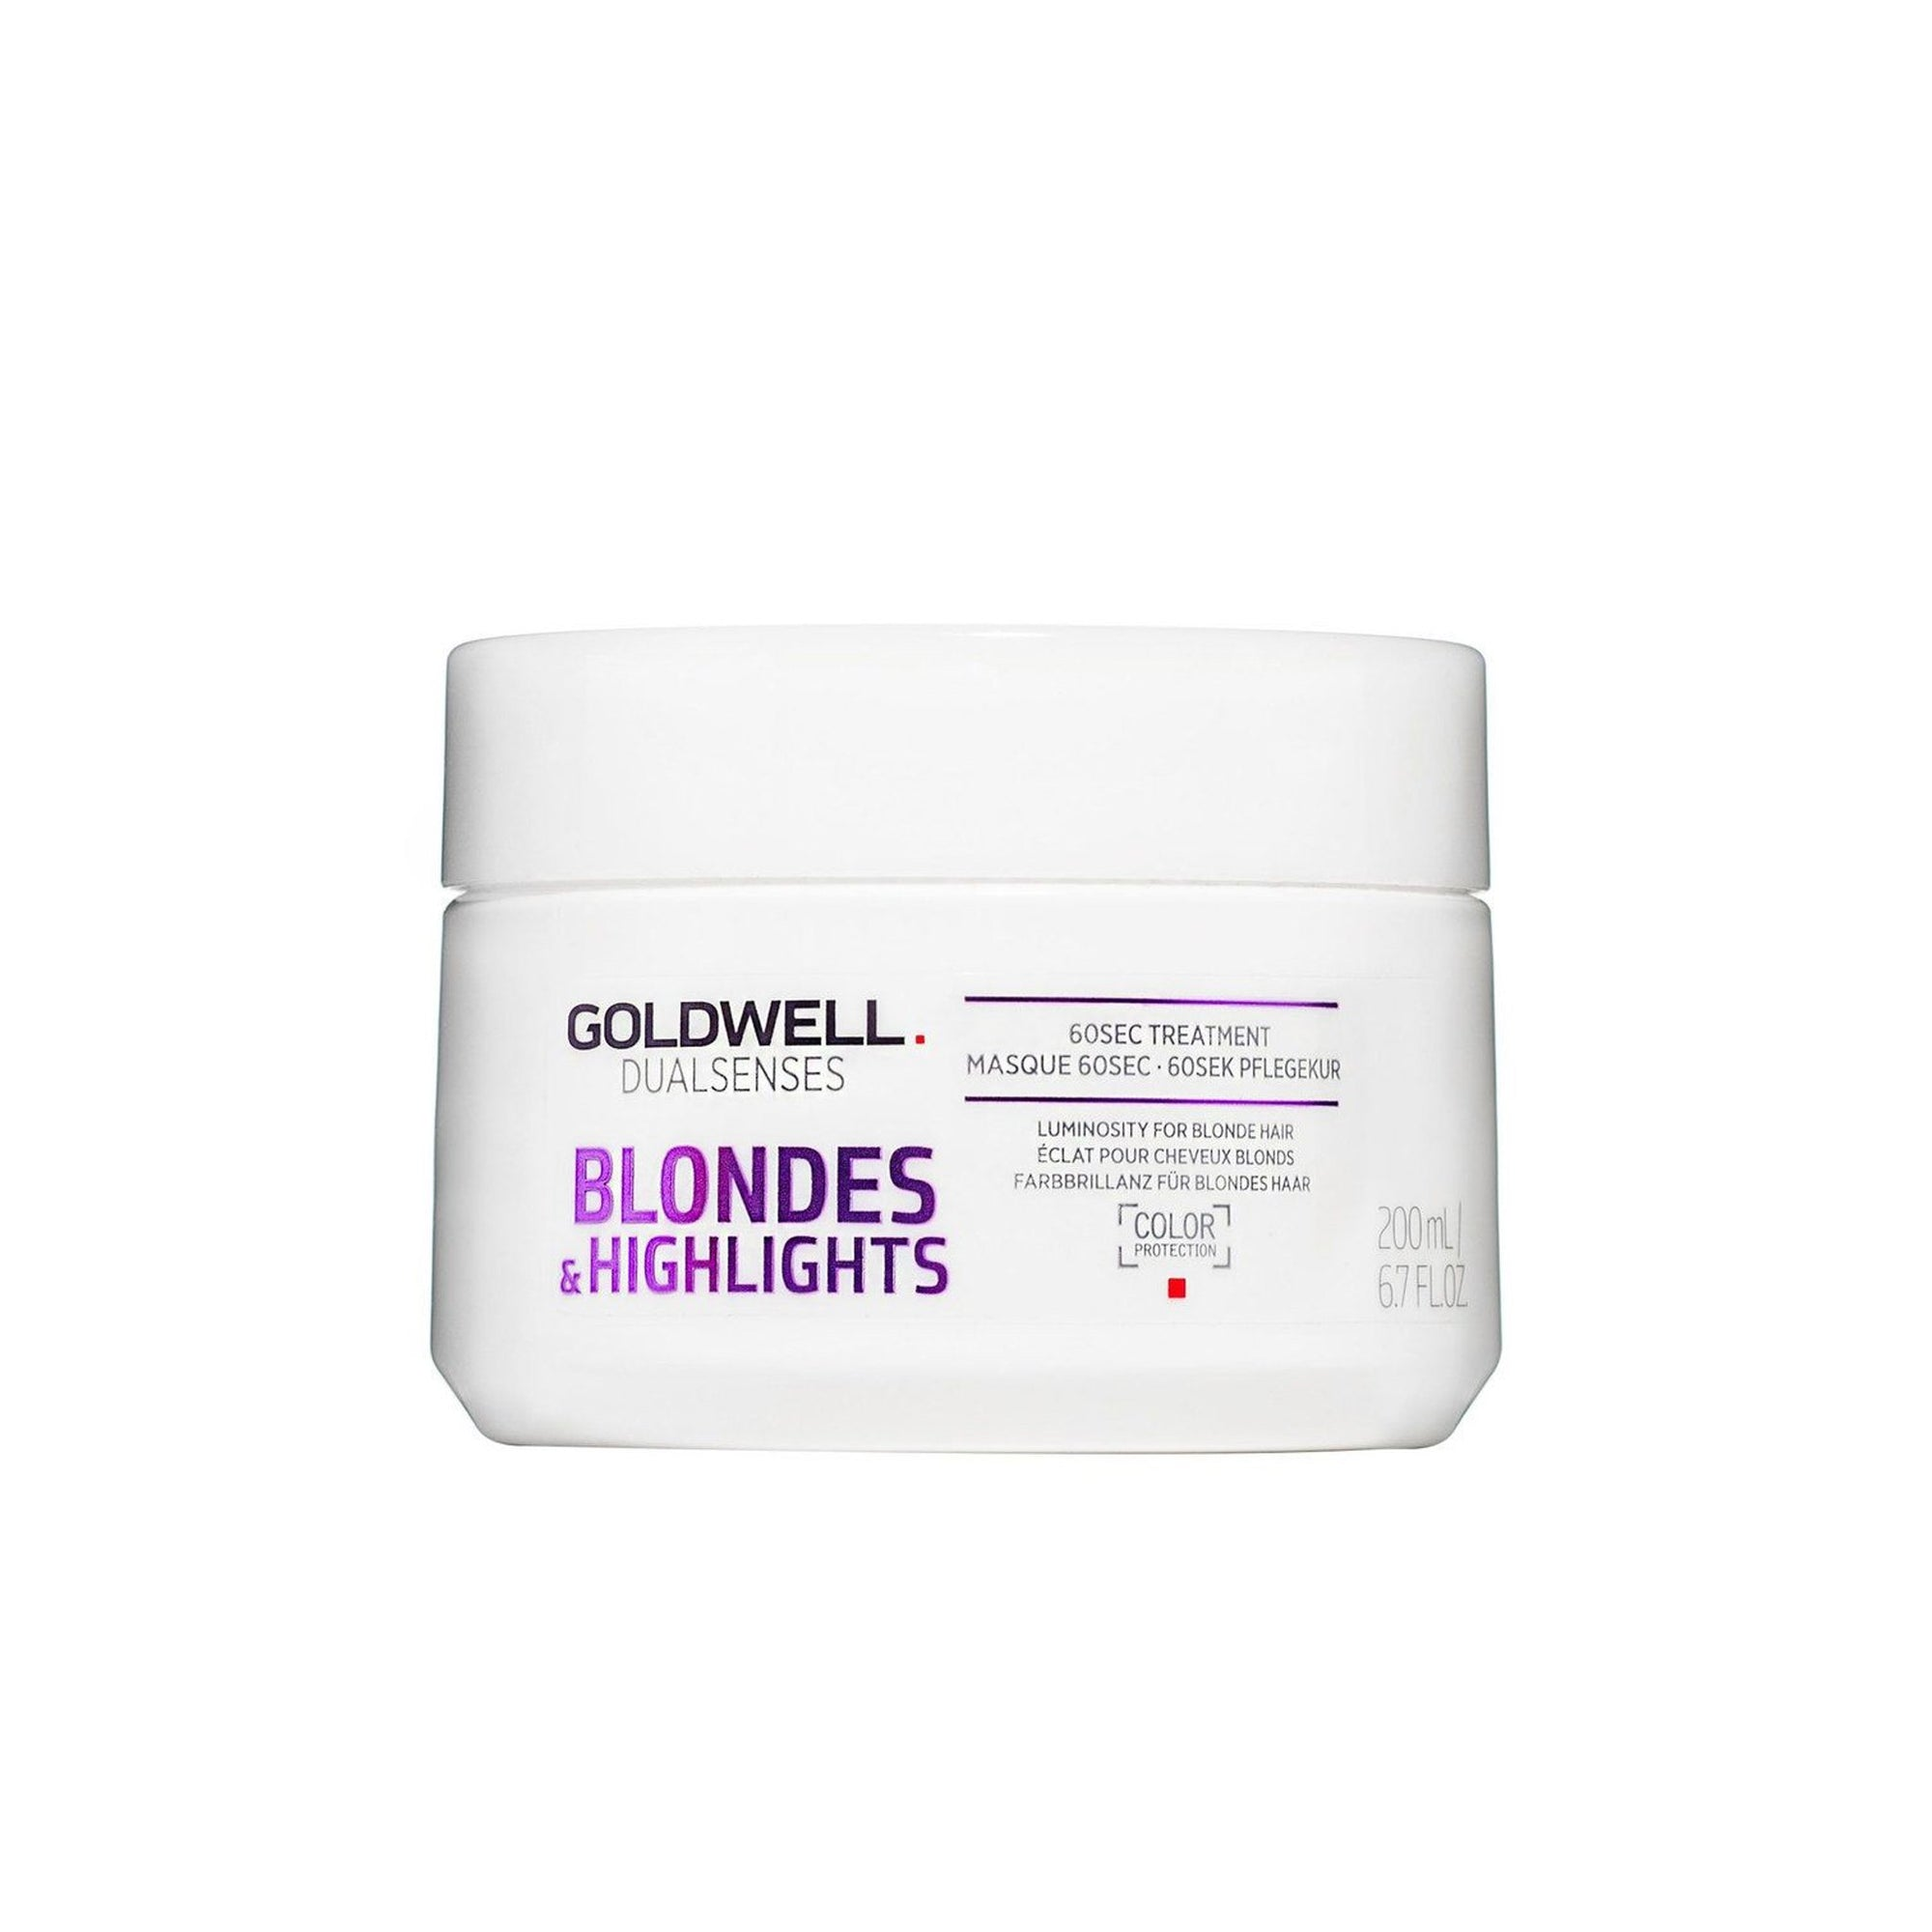 Goldwell Dualsenses Blondes and Highlights 60sec Treatment 200ml